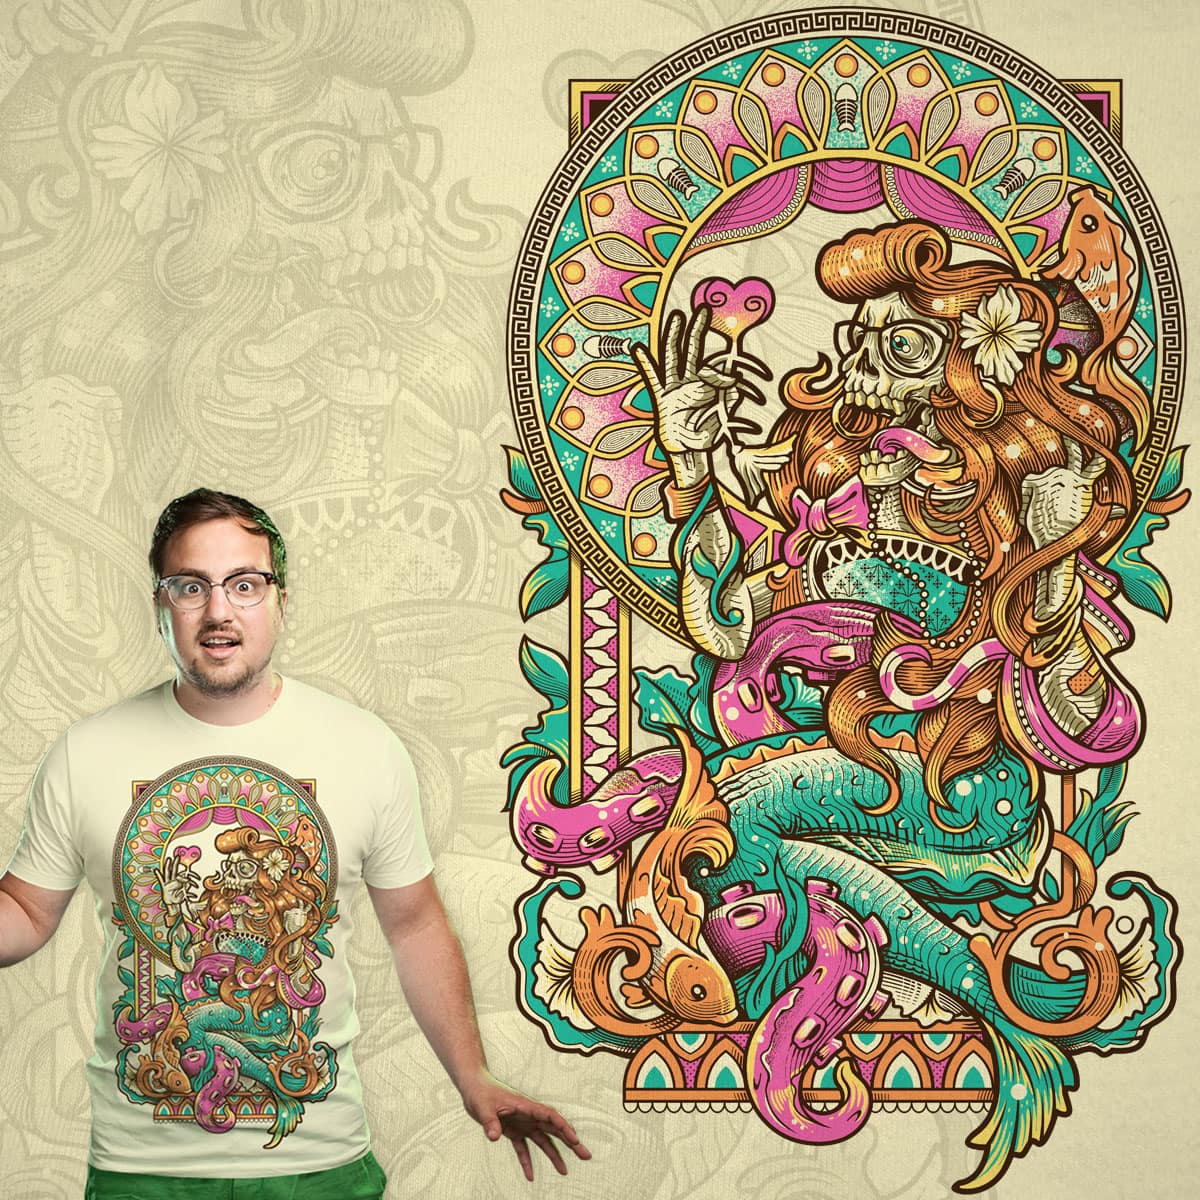 MerMadness by bogielicious on Threadless